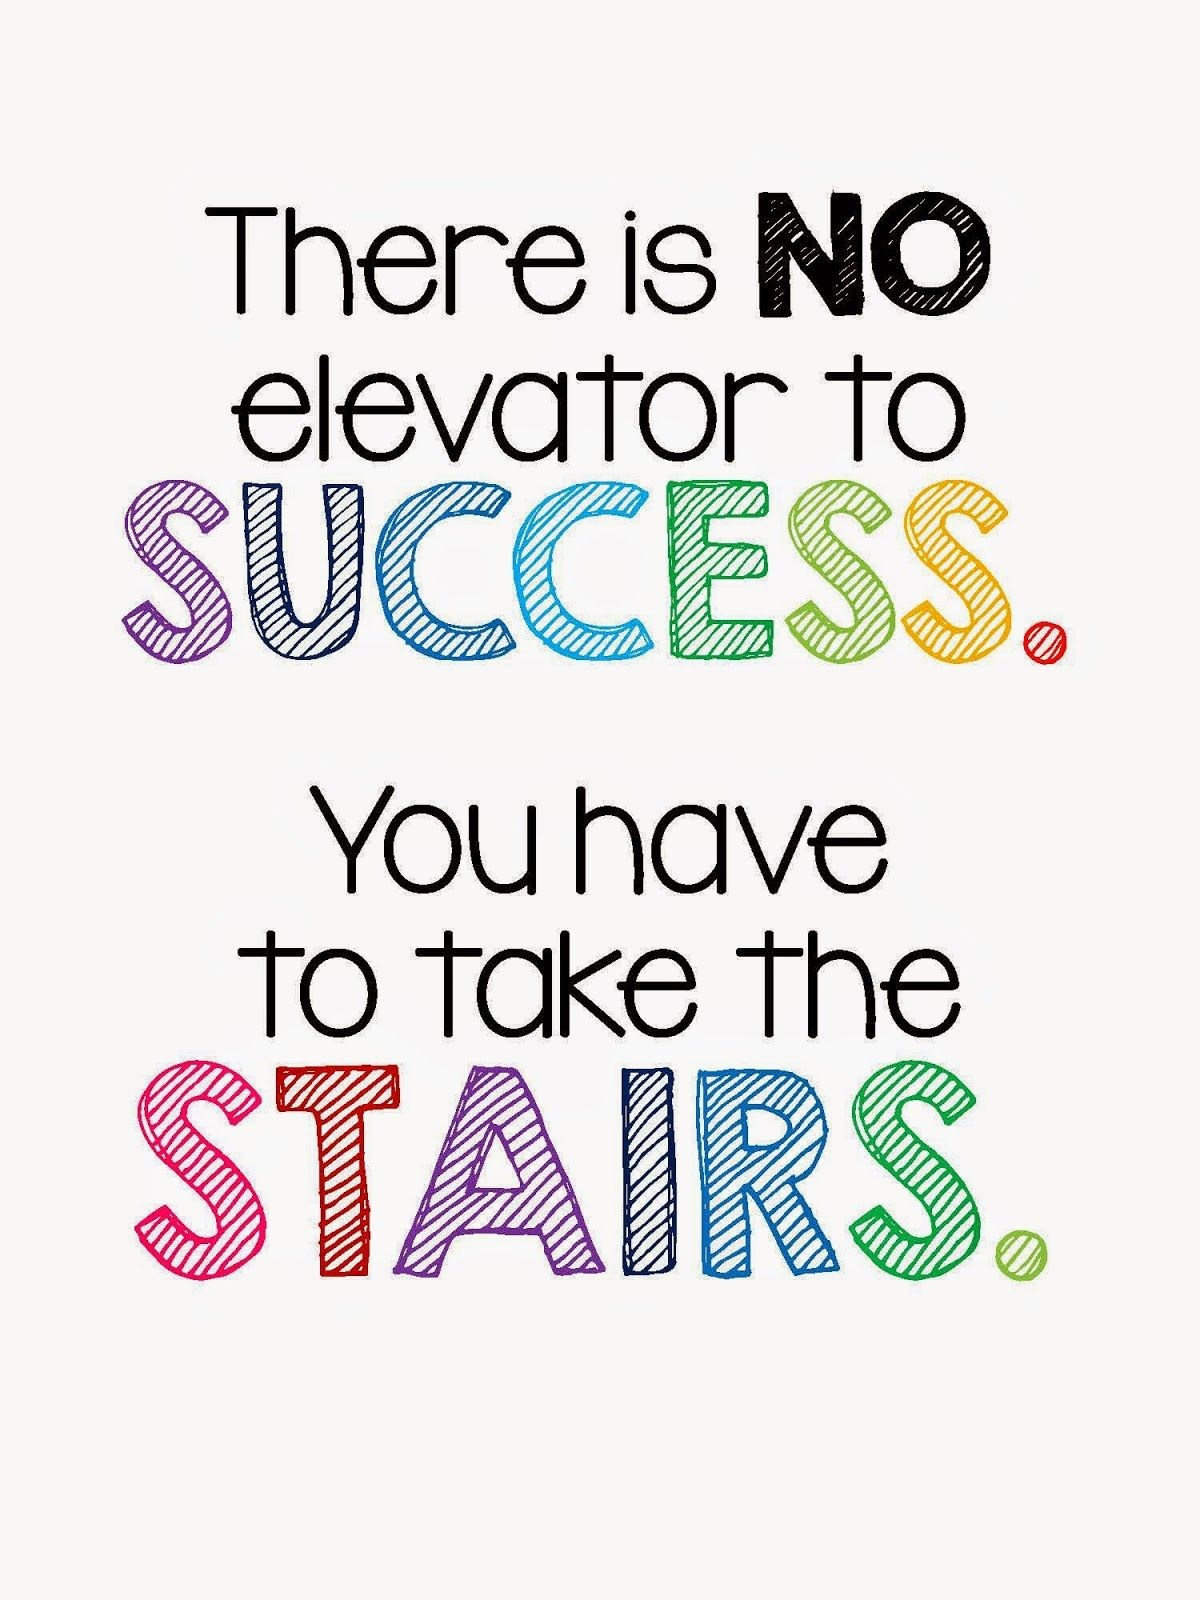 No elevator, take the stairs.jpg